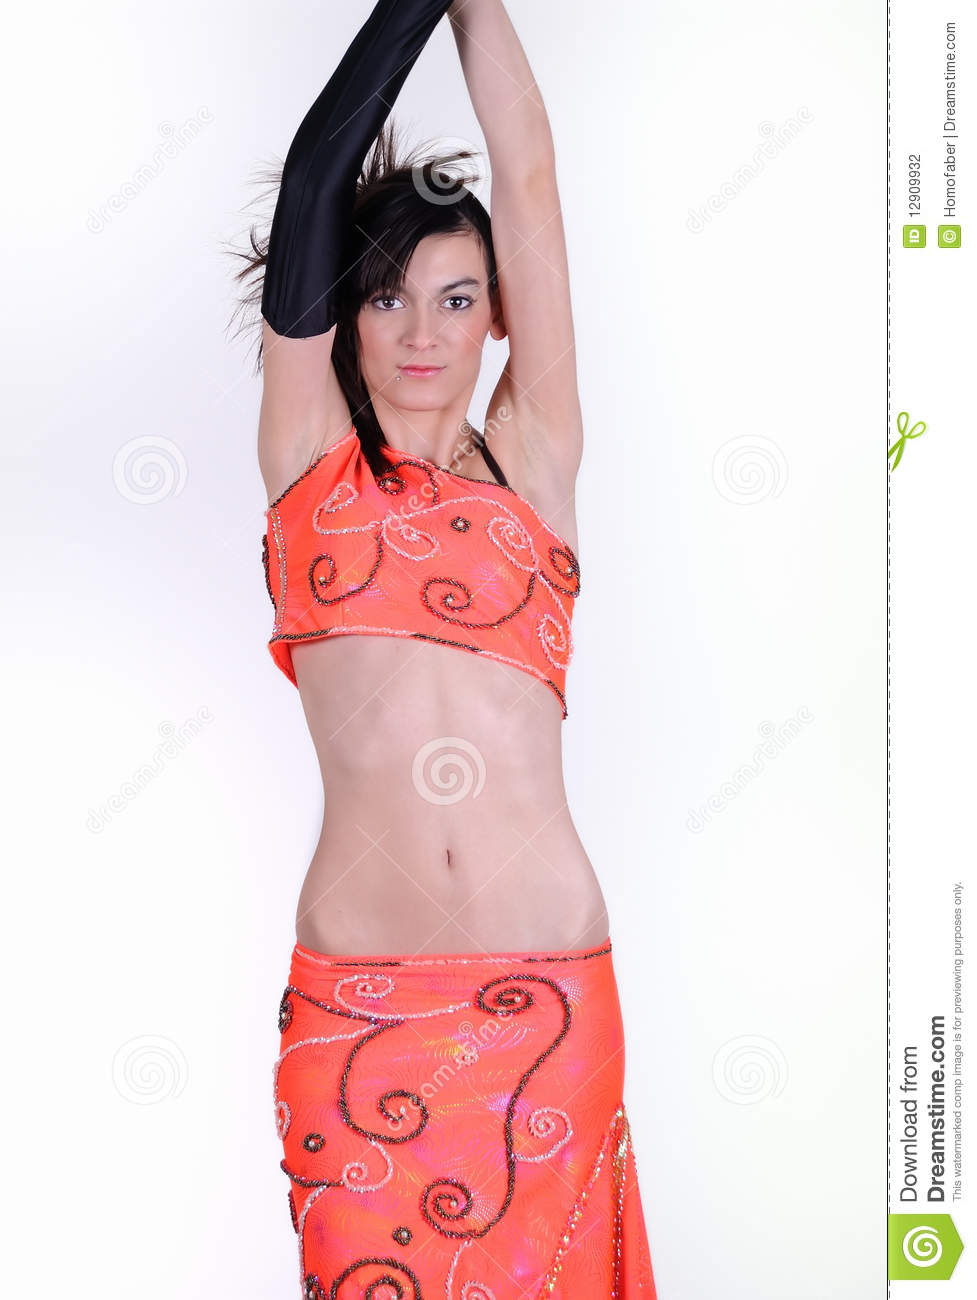 a0bb30d34857 Teen dance activities stock photo. Image of female